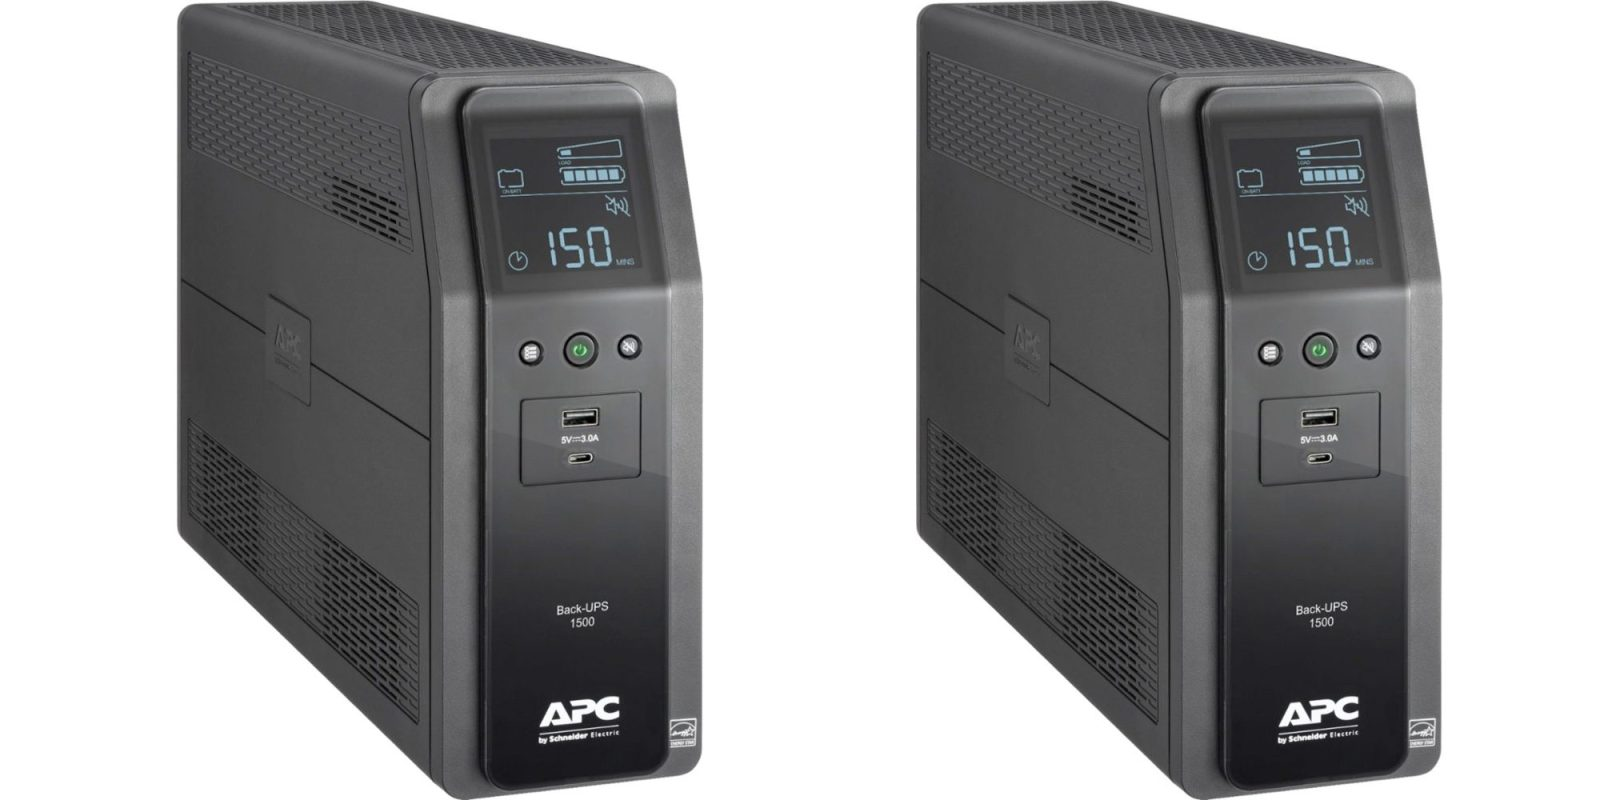 Save 20% on APC's Pro 1500VA battery backup + surge protector, now $160